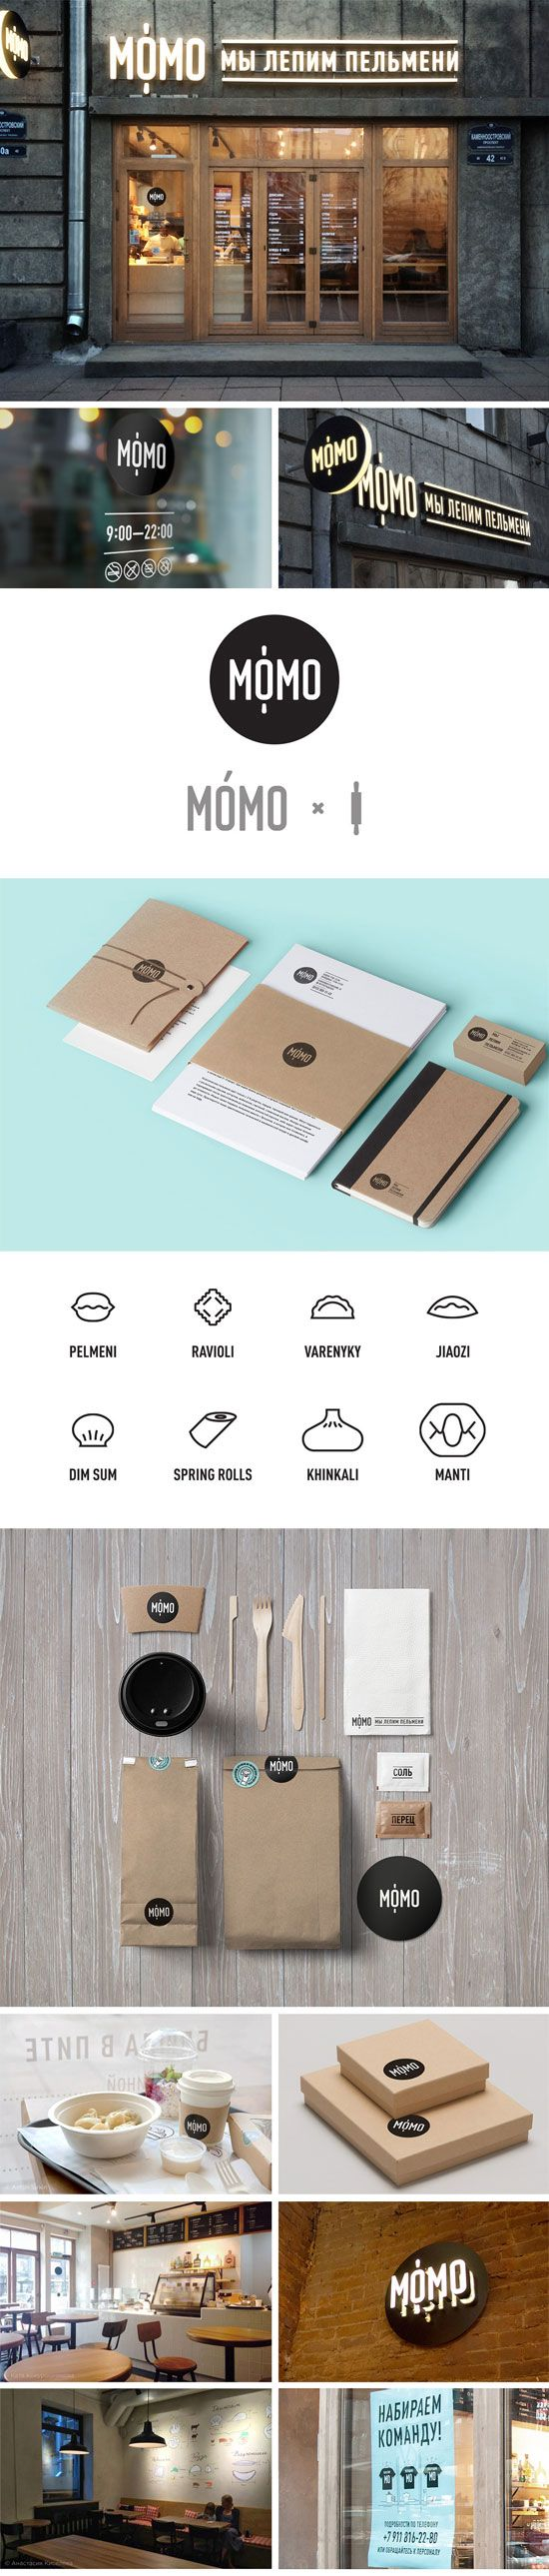 """MOMO Dumpling Cafe"" by Will Try Further - 55 Brand Identity Design Examples for…"